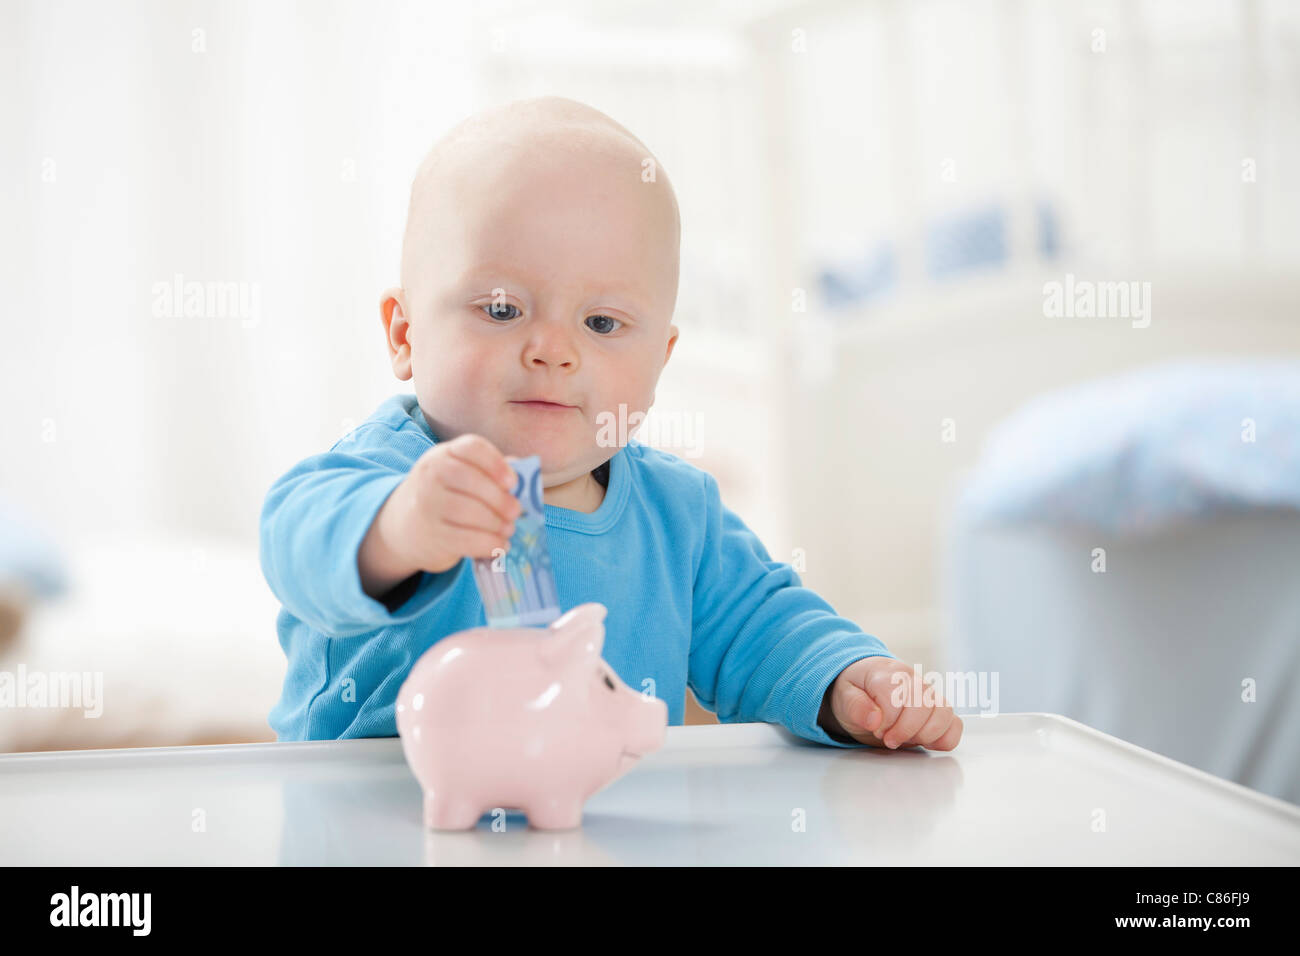 Baby boy putting money in piggy bank - Stock Image